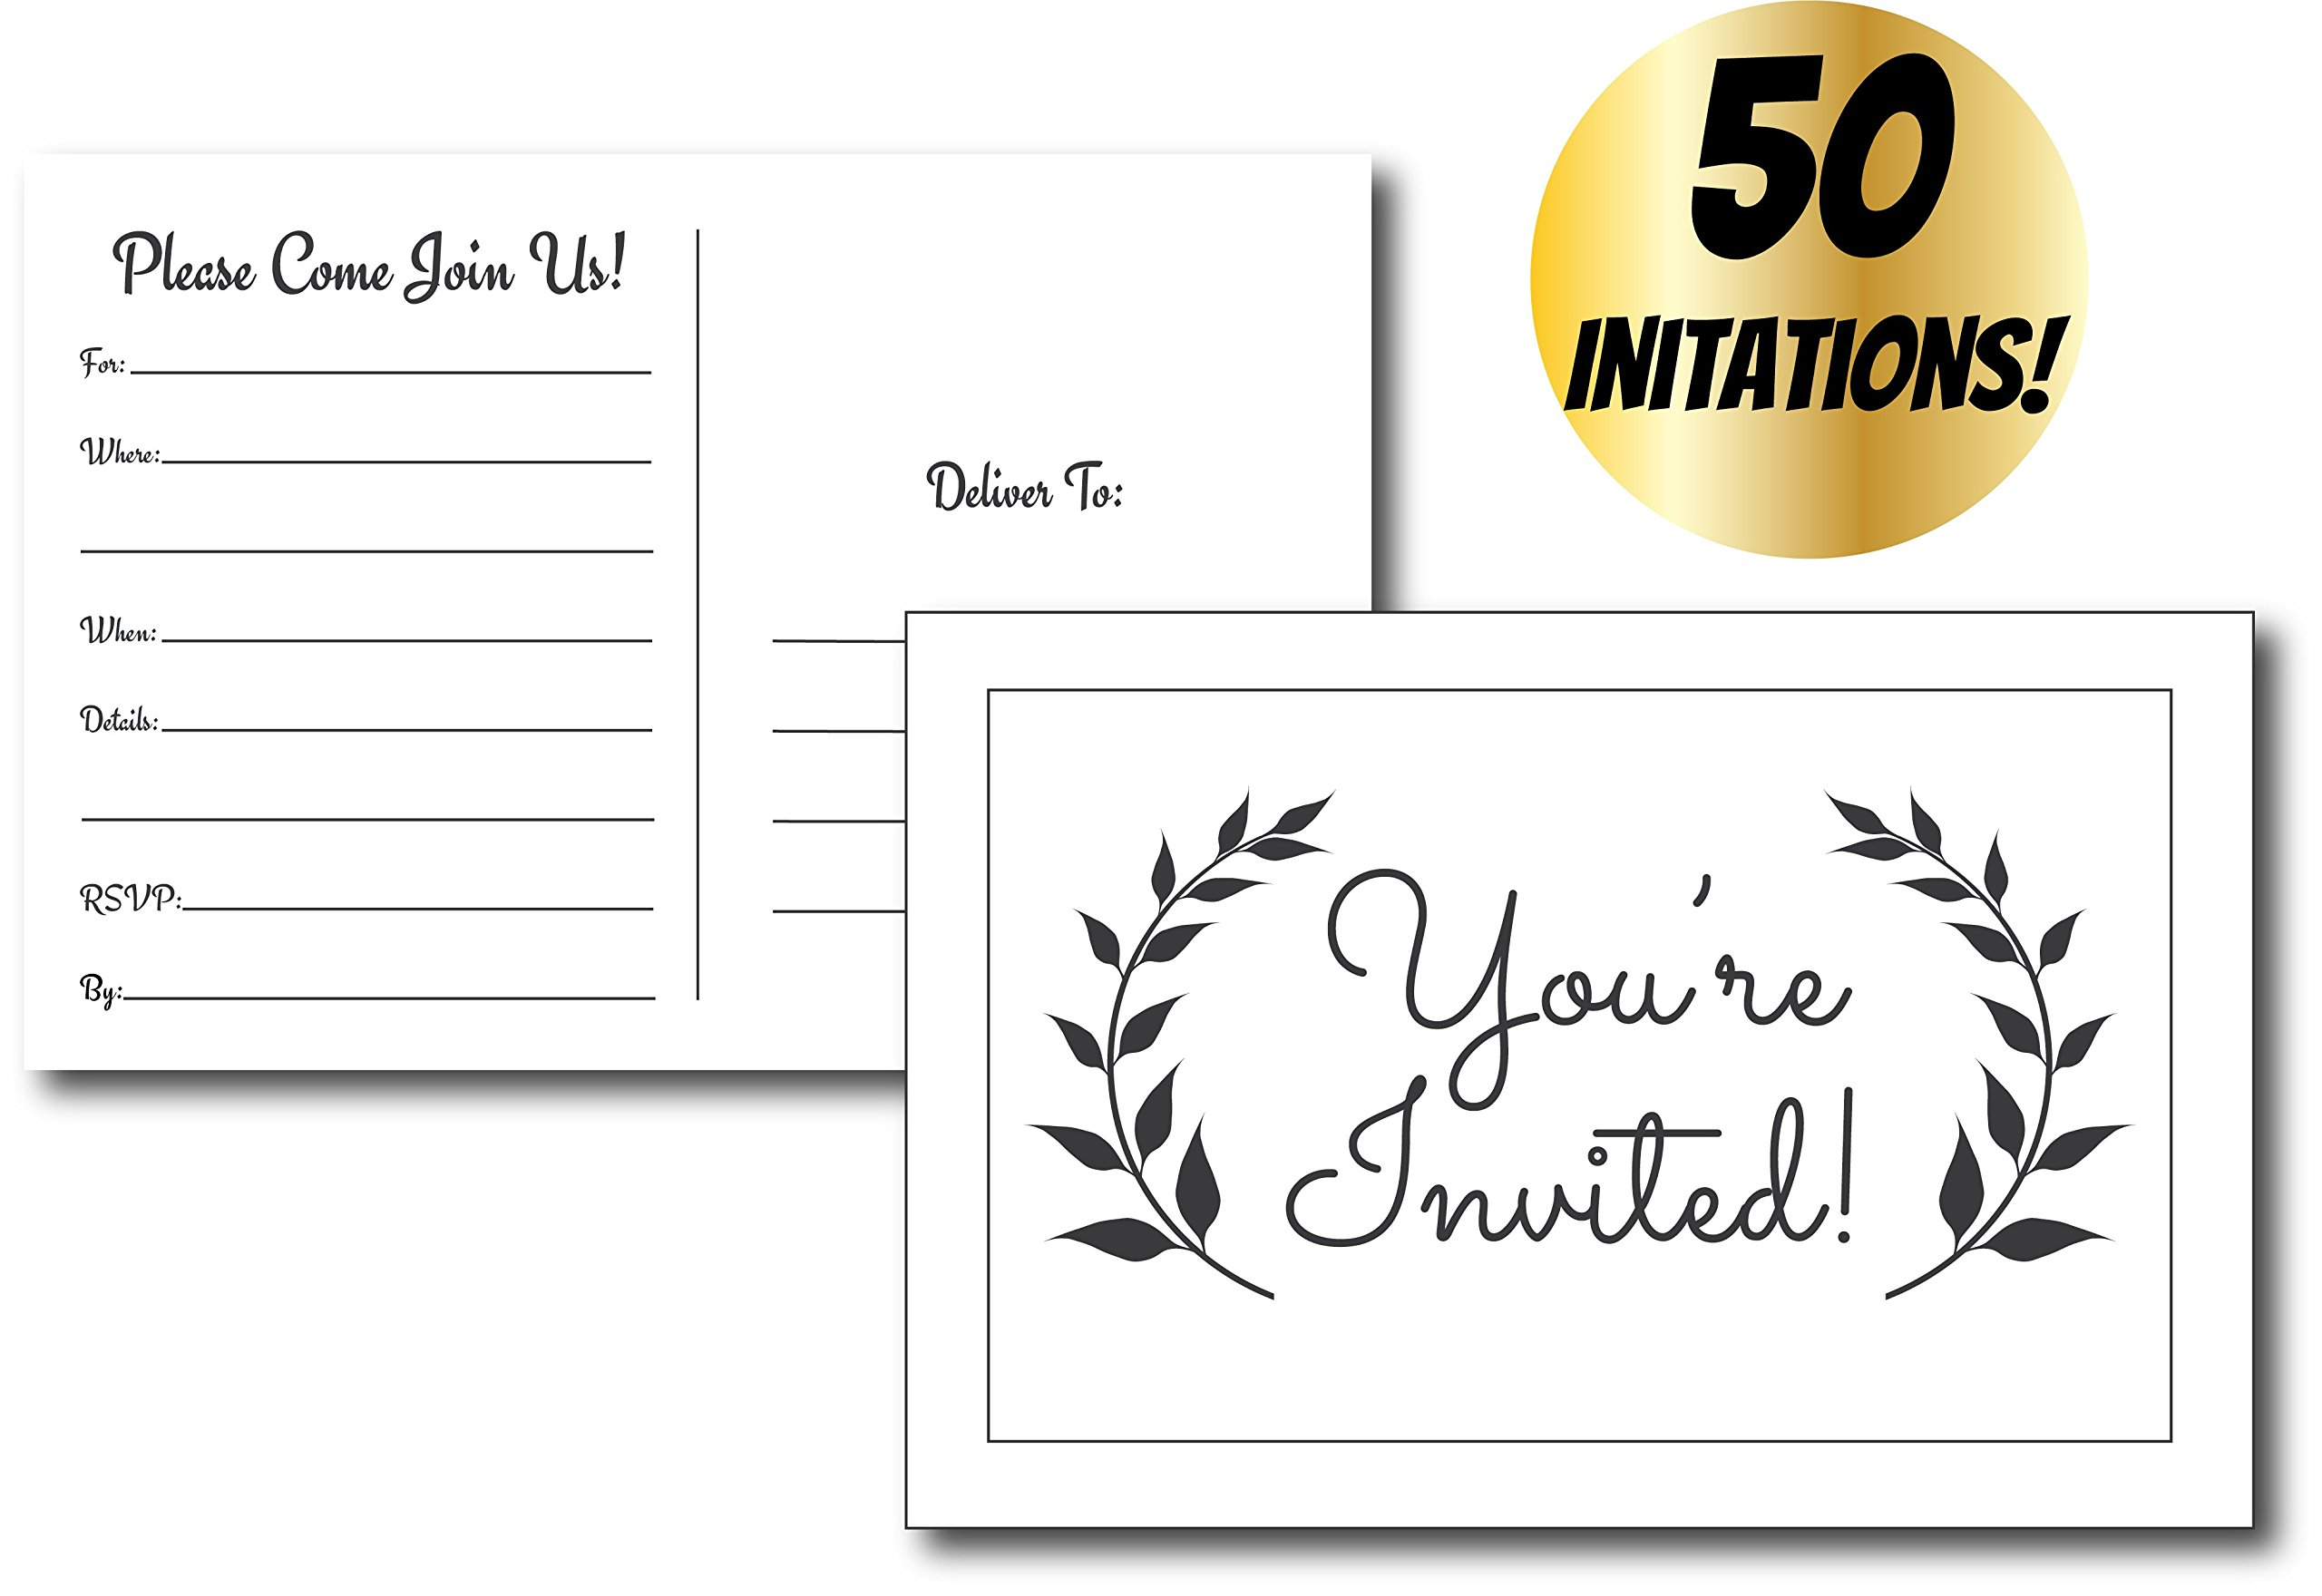 50 Simple & Modern Fill in Party Invitations for Any Occasion, Birthday Party Invitations, Baby Shower, Bridal Party, Retirement Party, Party Invitations for Girls, Boys, Men, Women, Graduation Party